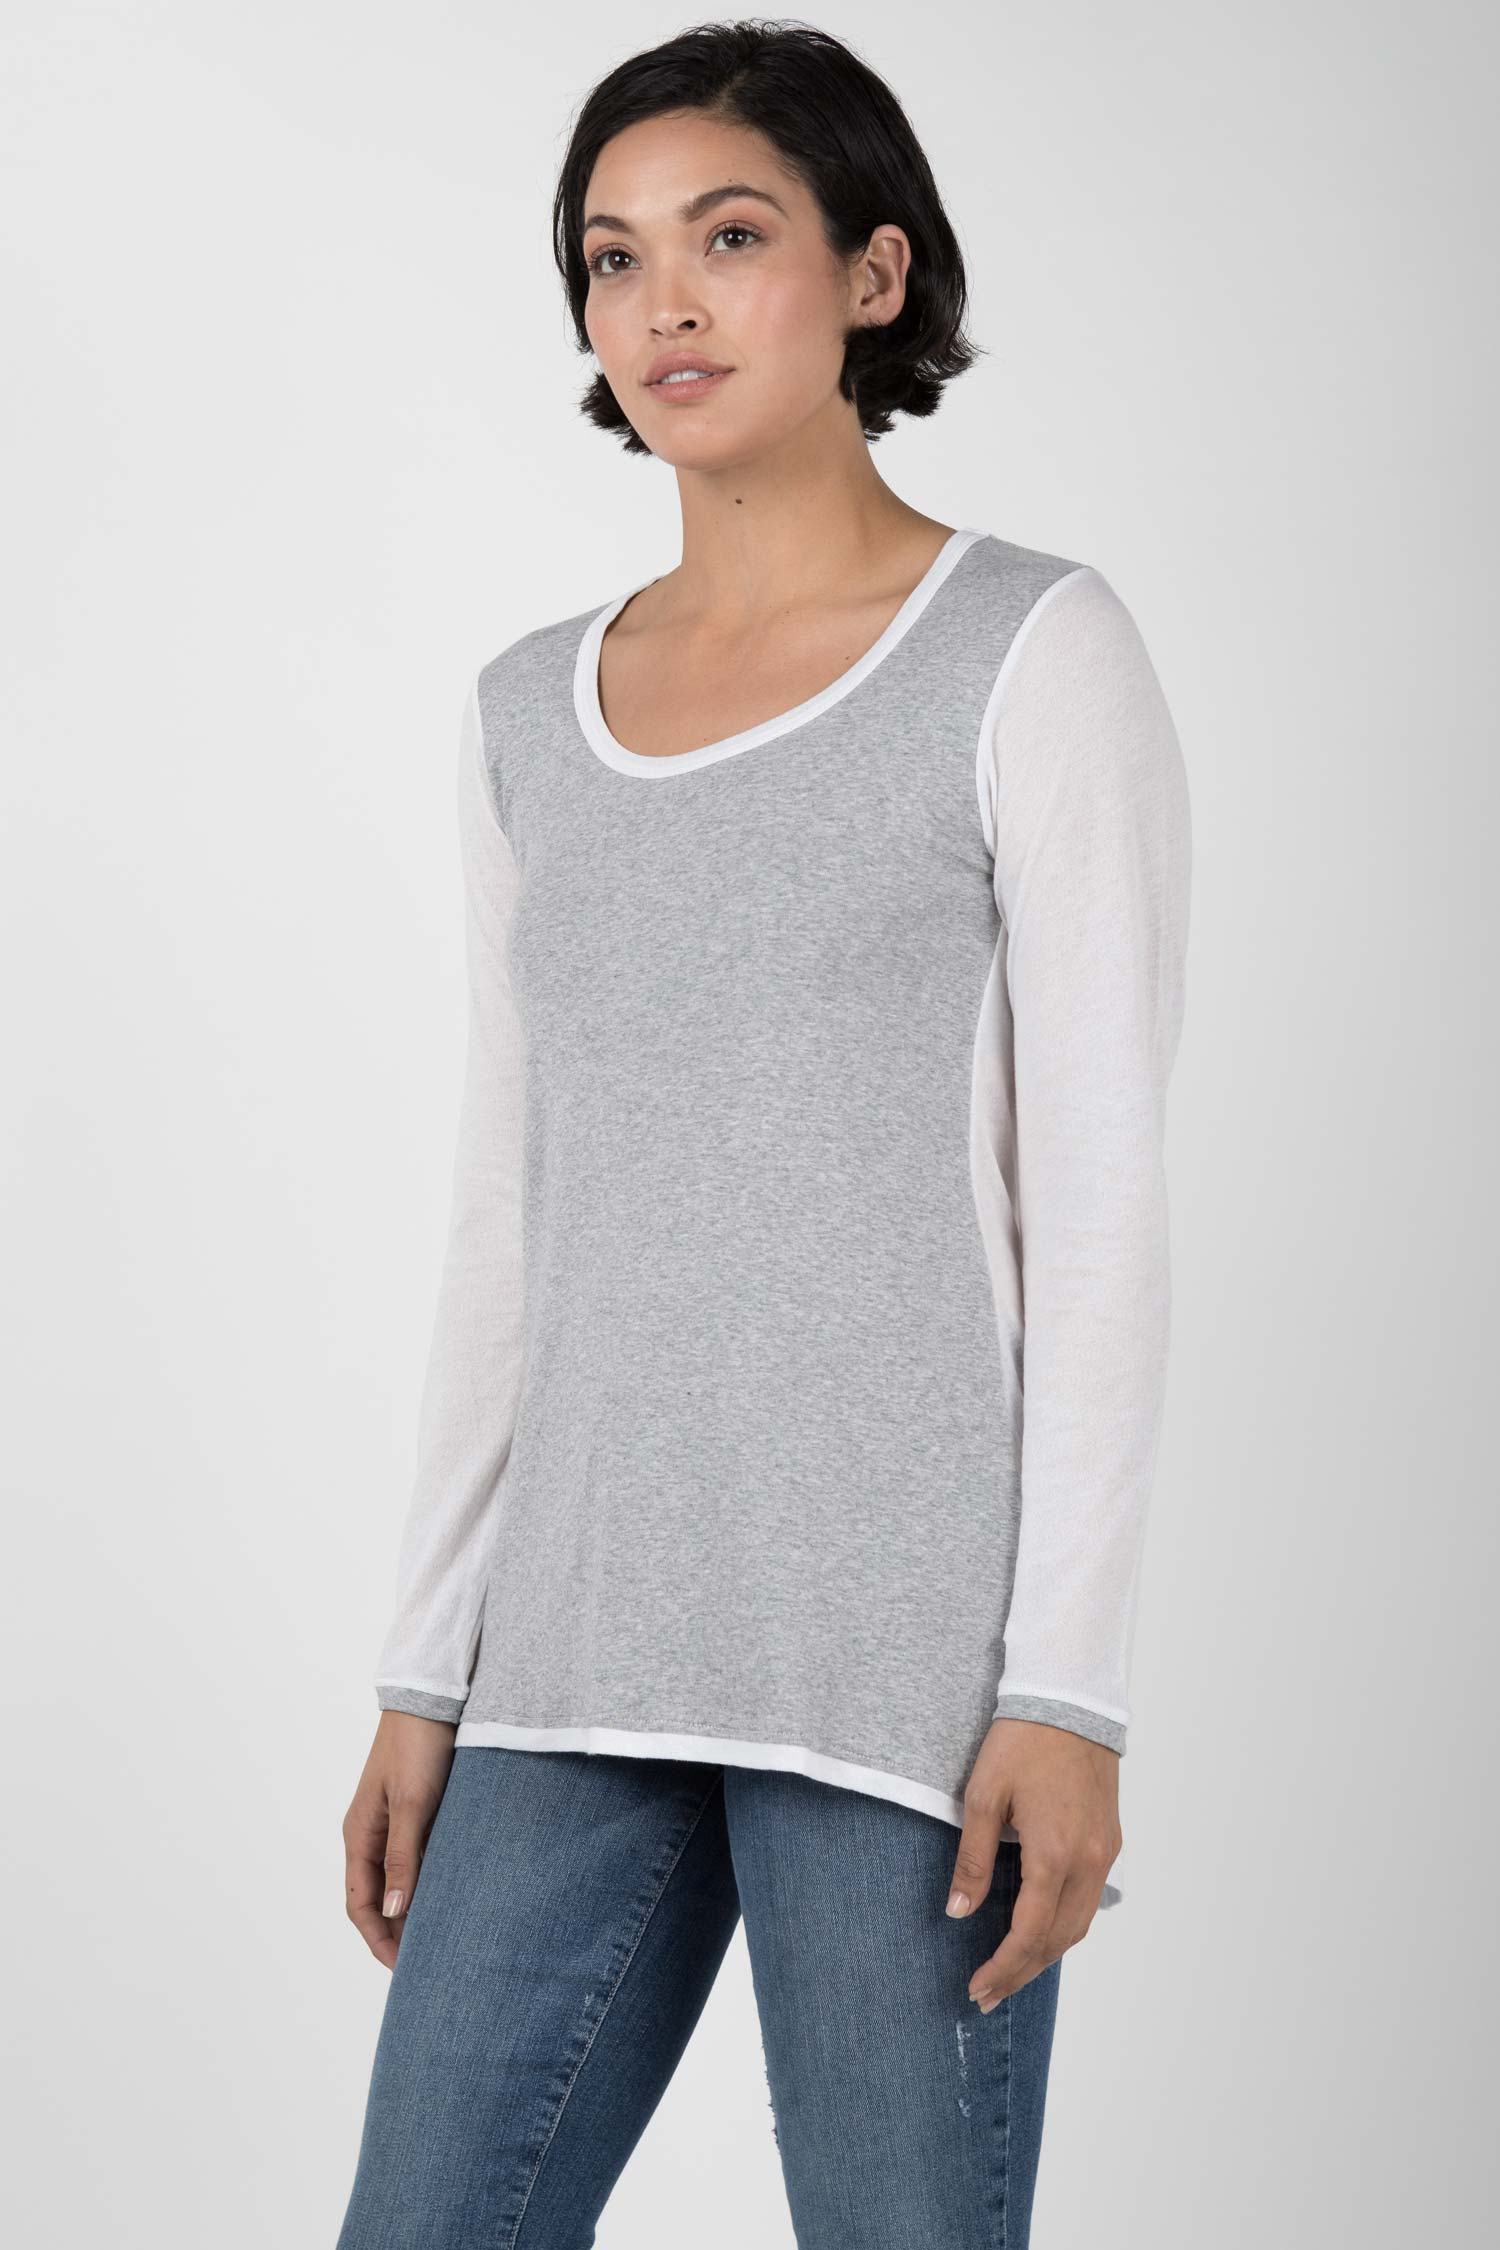 Womens Organic Cotton Tunic Top | Crepe Scoop Tunic | Gray White